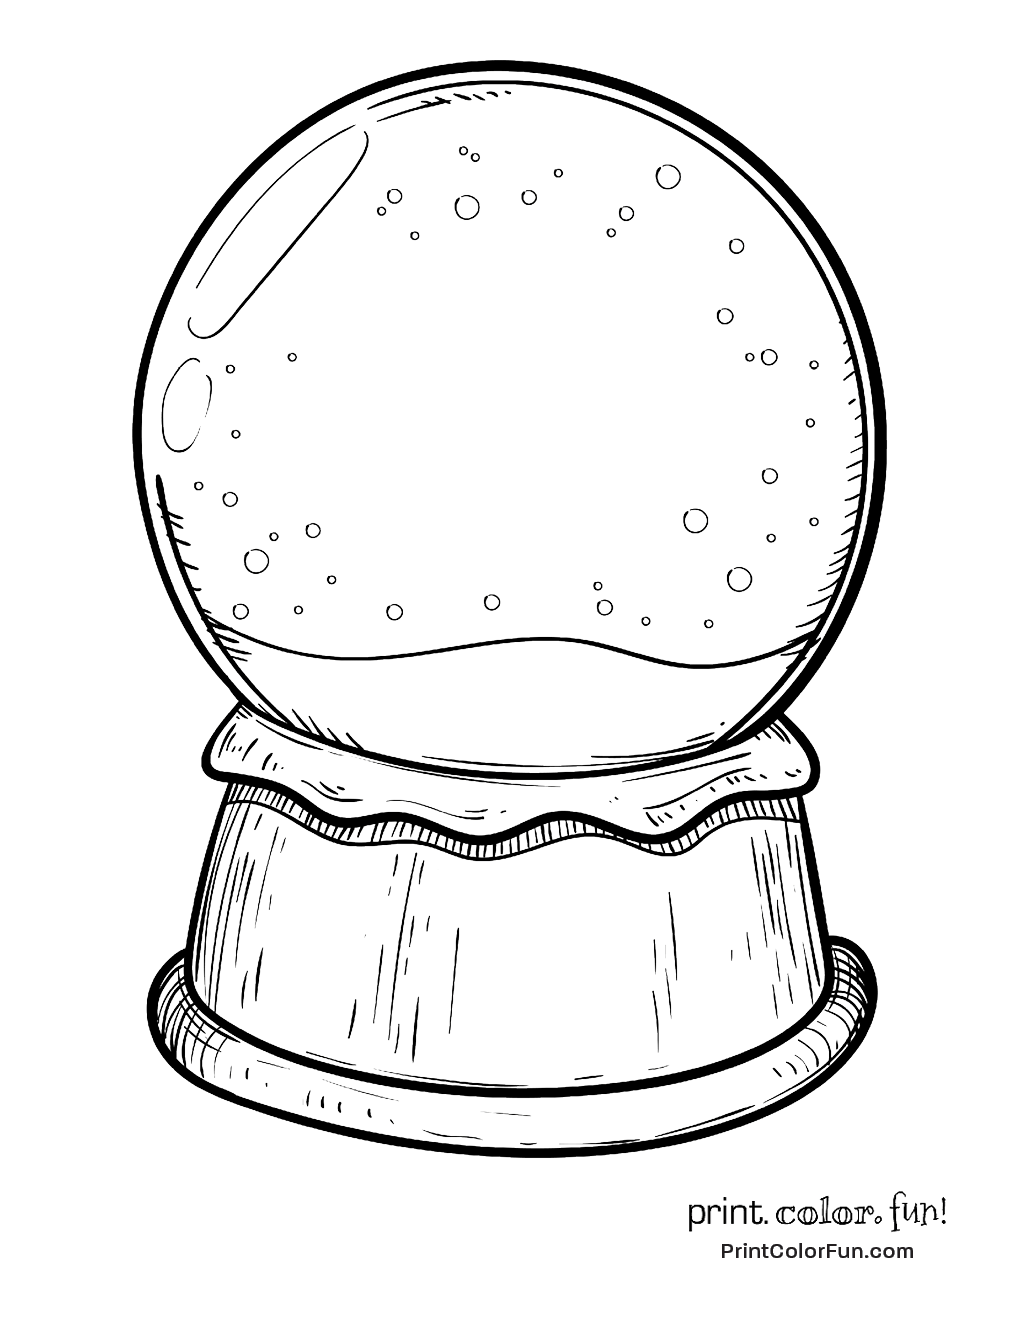 Christmas Globe Coloring Pages With Blank Snow Page Print Color Fun